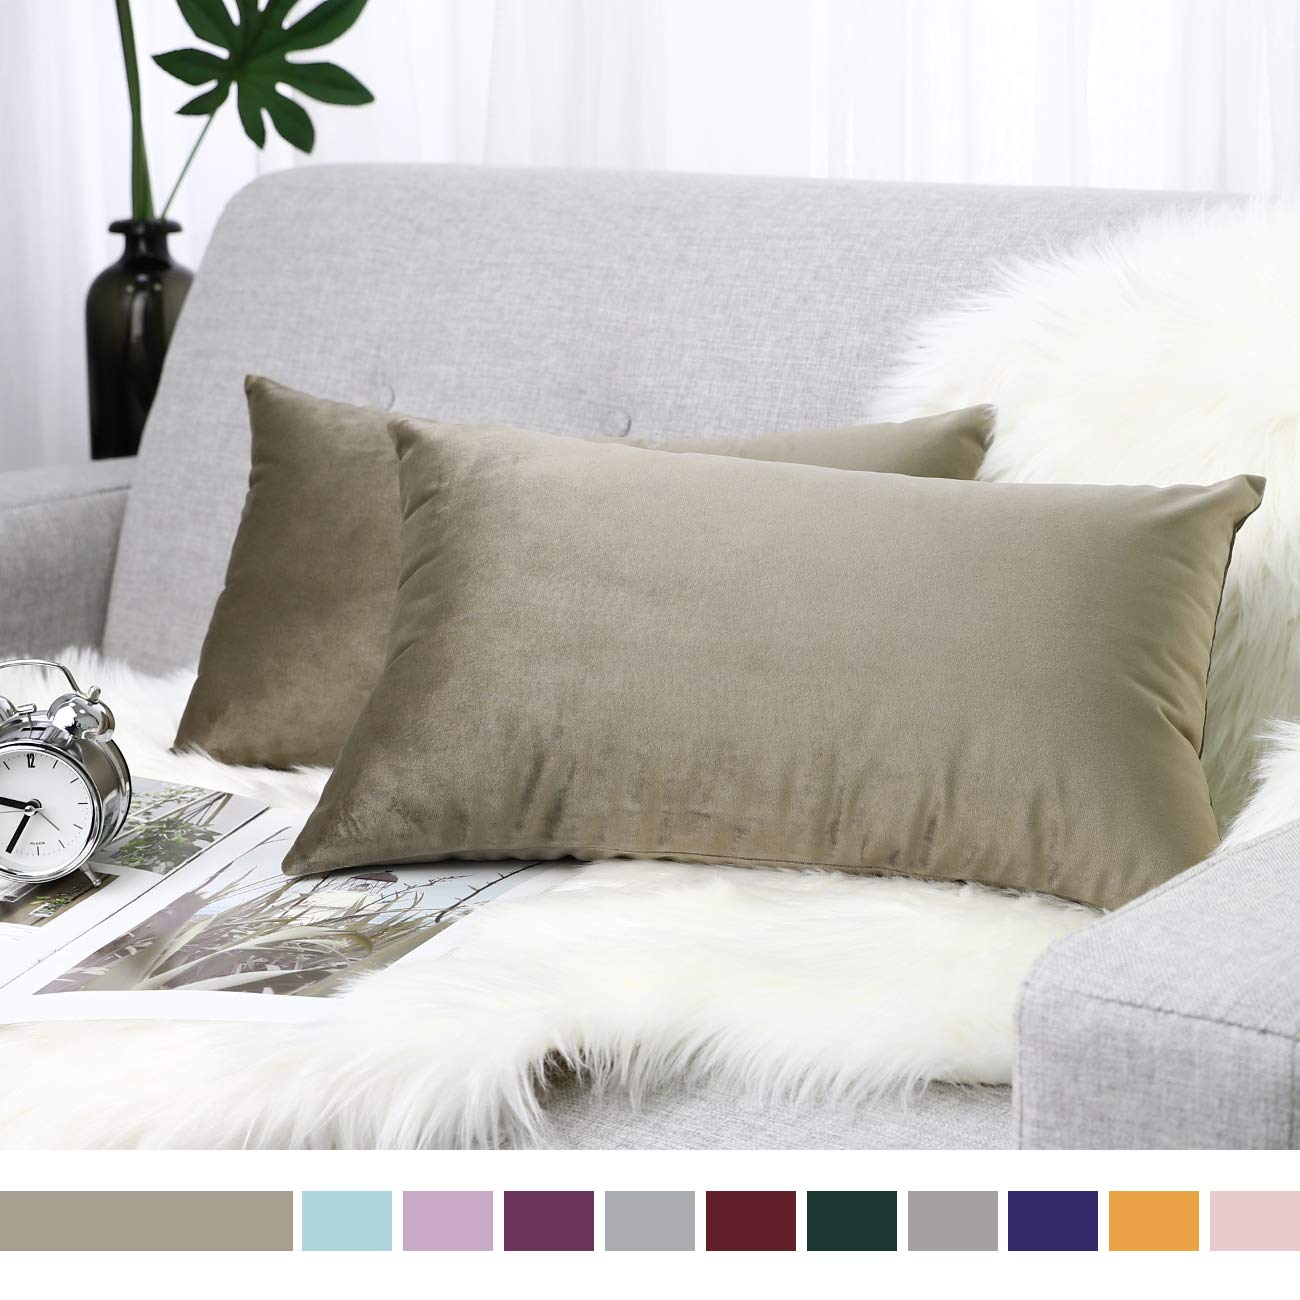 Lewondr Velvet Throw Pillow Case, 2 Pack Soft Solid Color Modern Square Pillow Case Throw Cushion Covers for Car ...